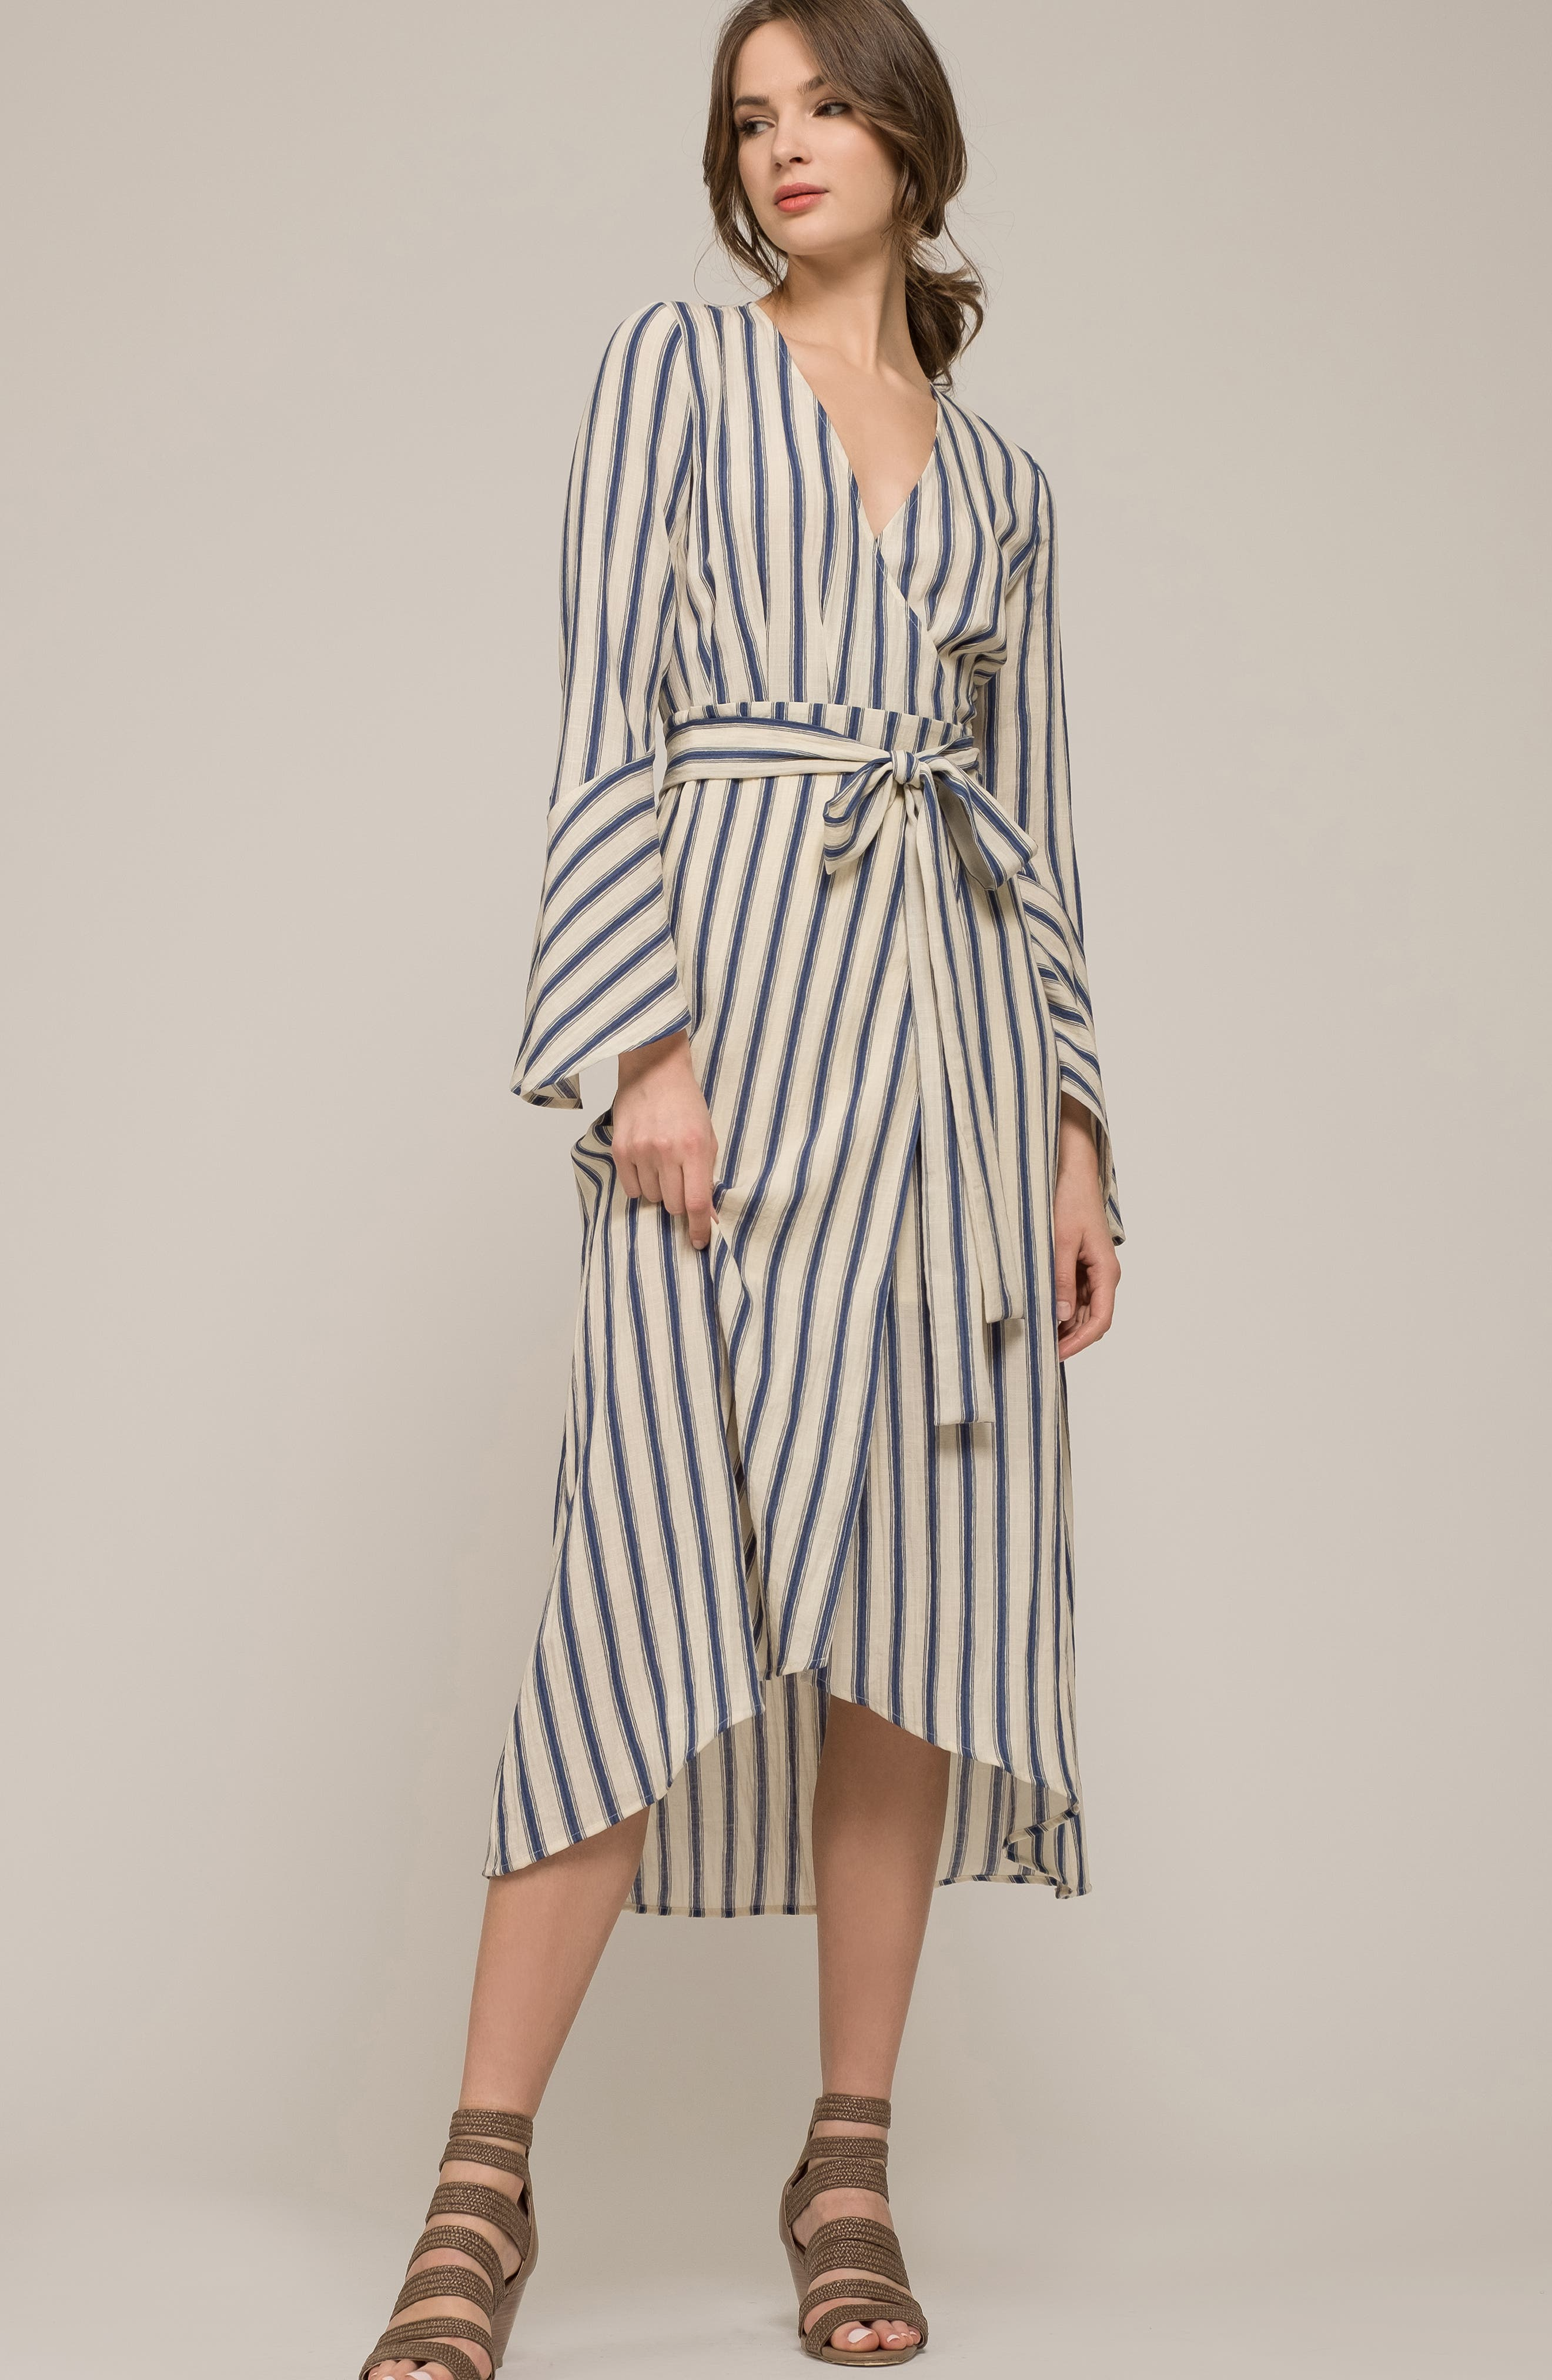 Stripe Flared Sleeve Wrap Dress,                             Alternate thumbnail 8, color,                             400